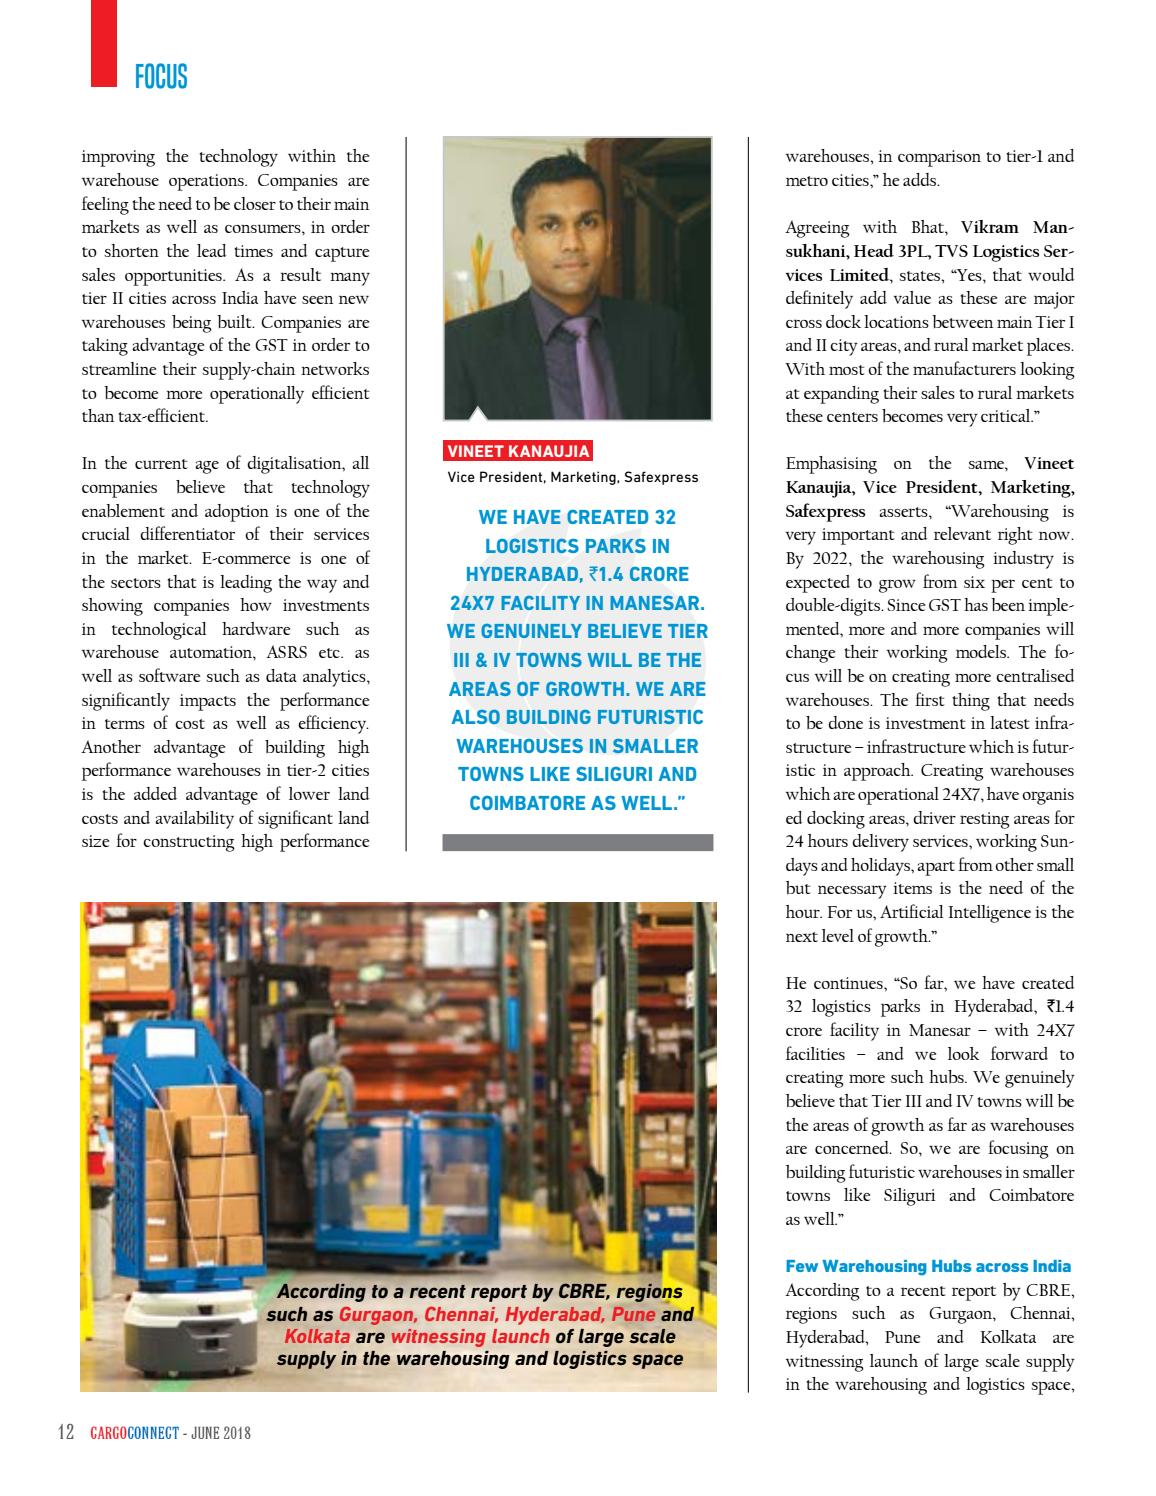 CARGOCONNECT June 2018 by Surecom Media - issuu